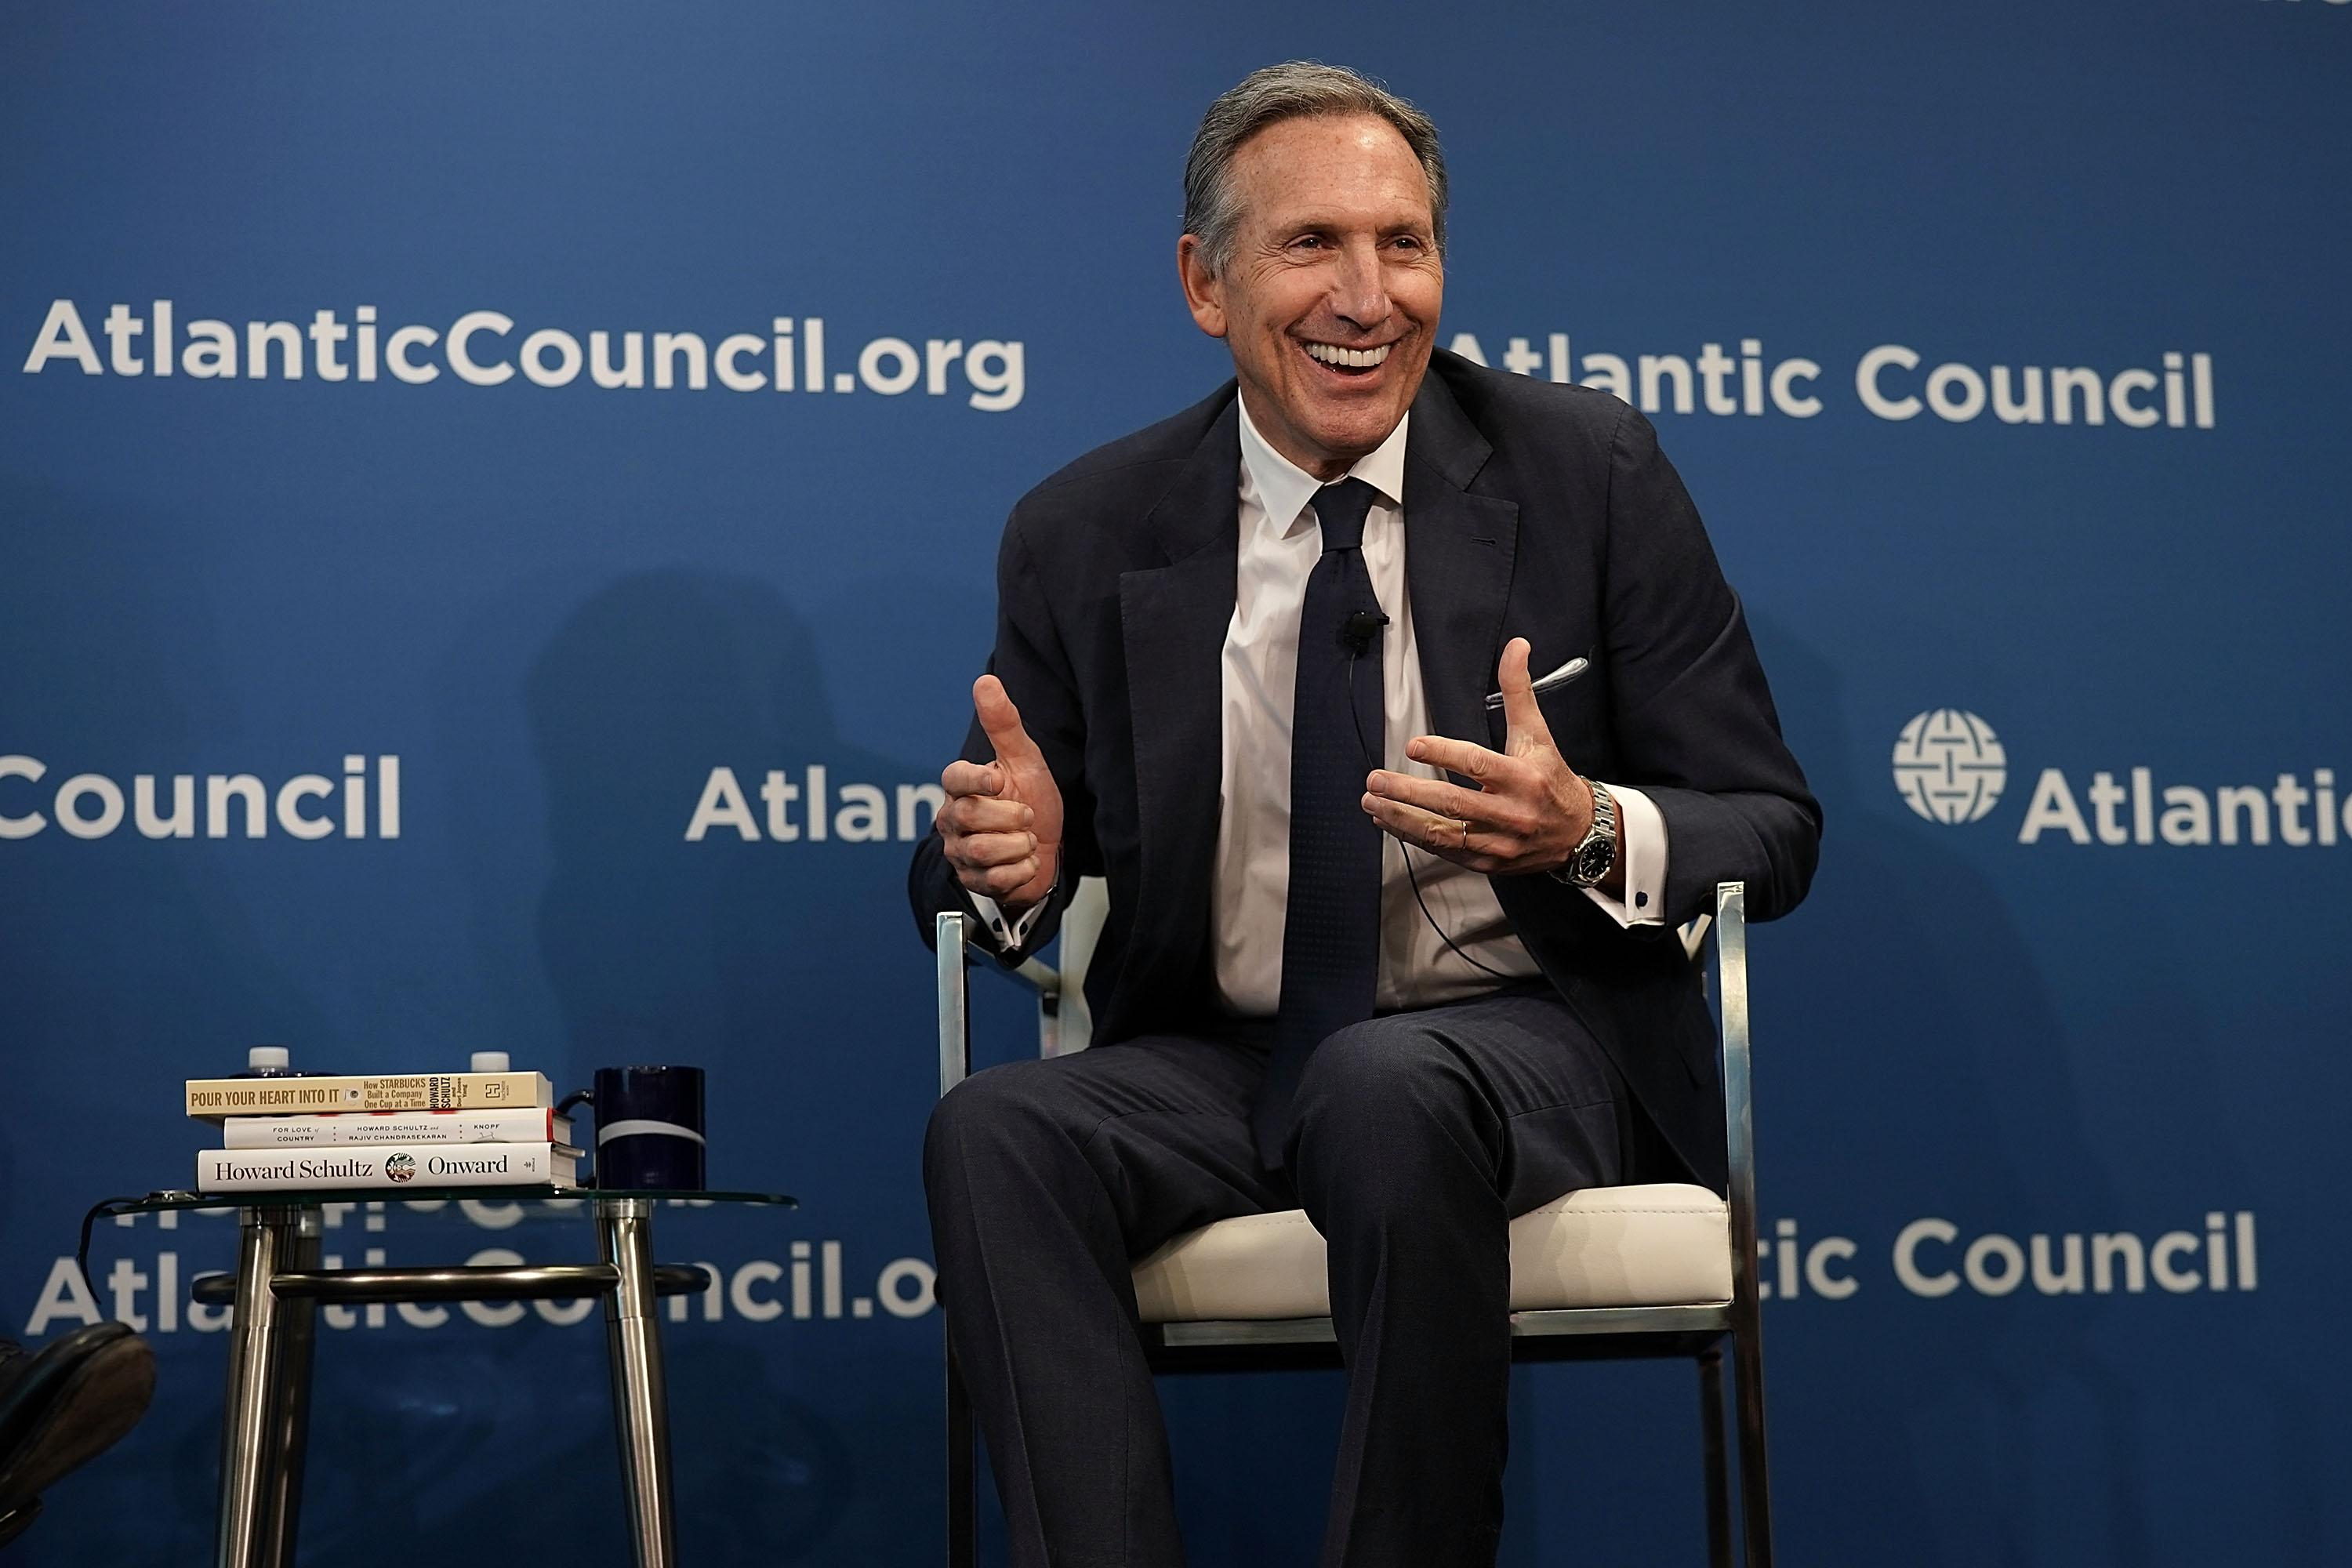 WASHINGTON, DC - MAY 10:  Executive Chairman of Starbucks Corporation Howard Schultz participates in a discussion at the Atlantic Council May 10, 2018 in Washington, DC. The Atlantic Council held a discussion on 'The Role of a Global Public Company.'  (Photo by Alex Wong/Getty Images)